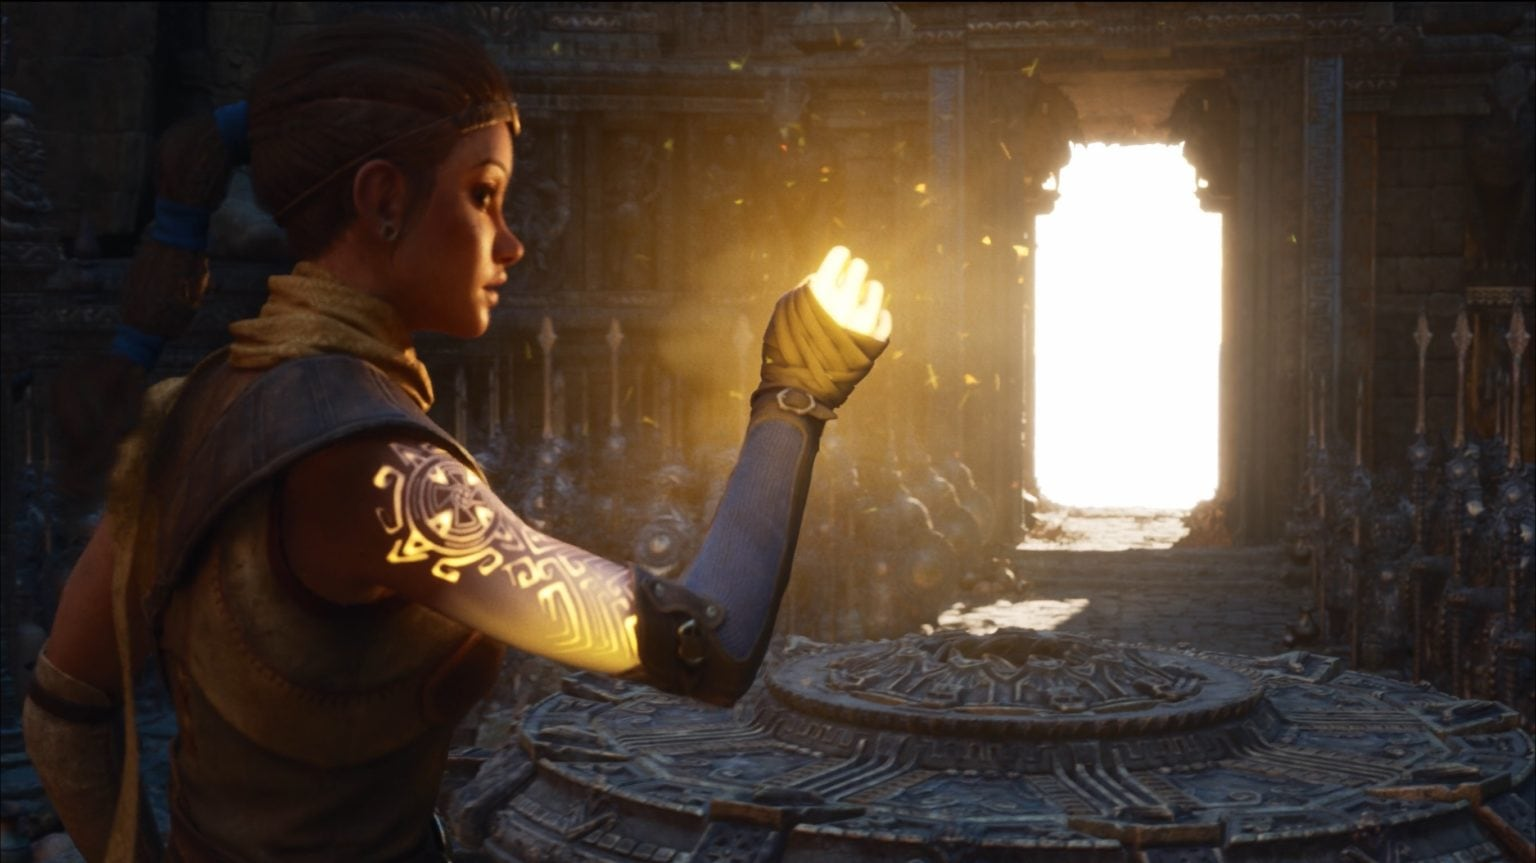 Unreal Engine 5 is a quantum leap in game graphics.